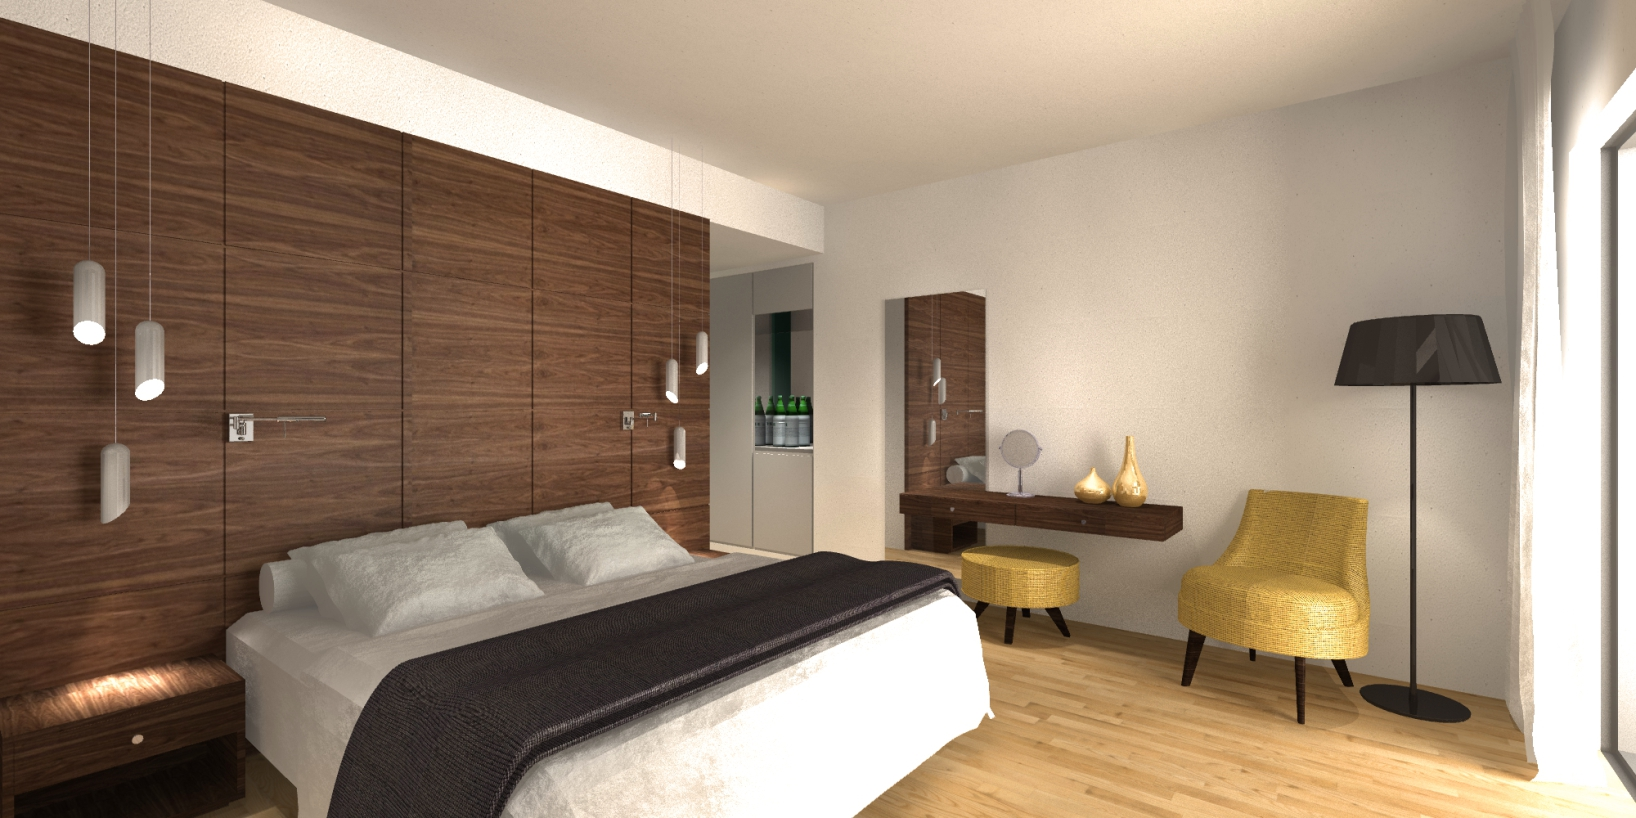 An island hotel room interior for Hotel room interior